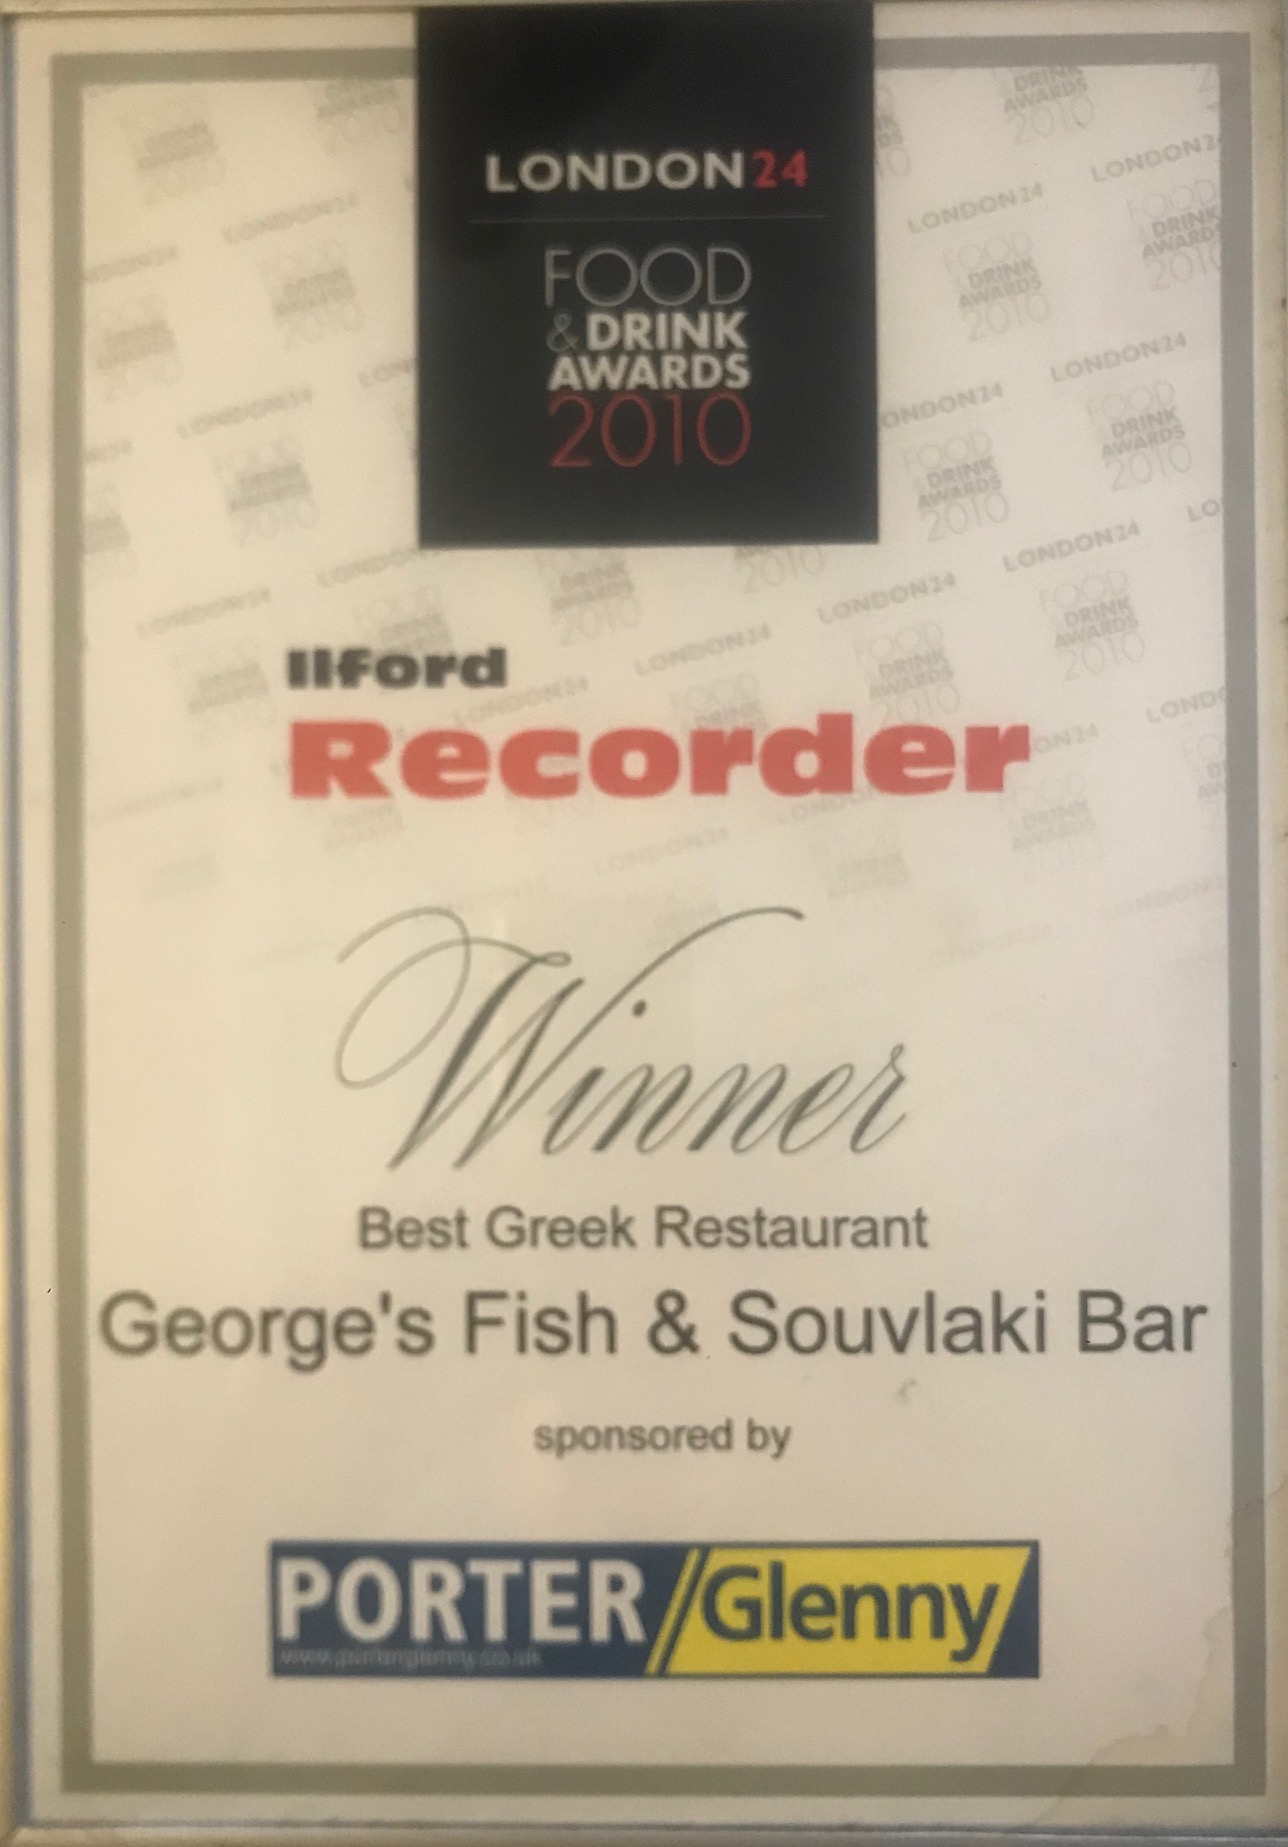 georges-fishbar-award-ilford-recorder-2010